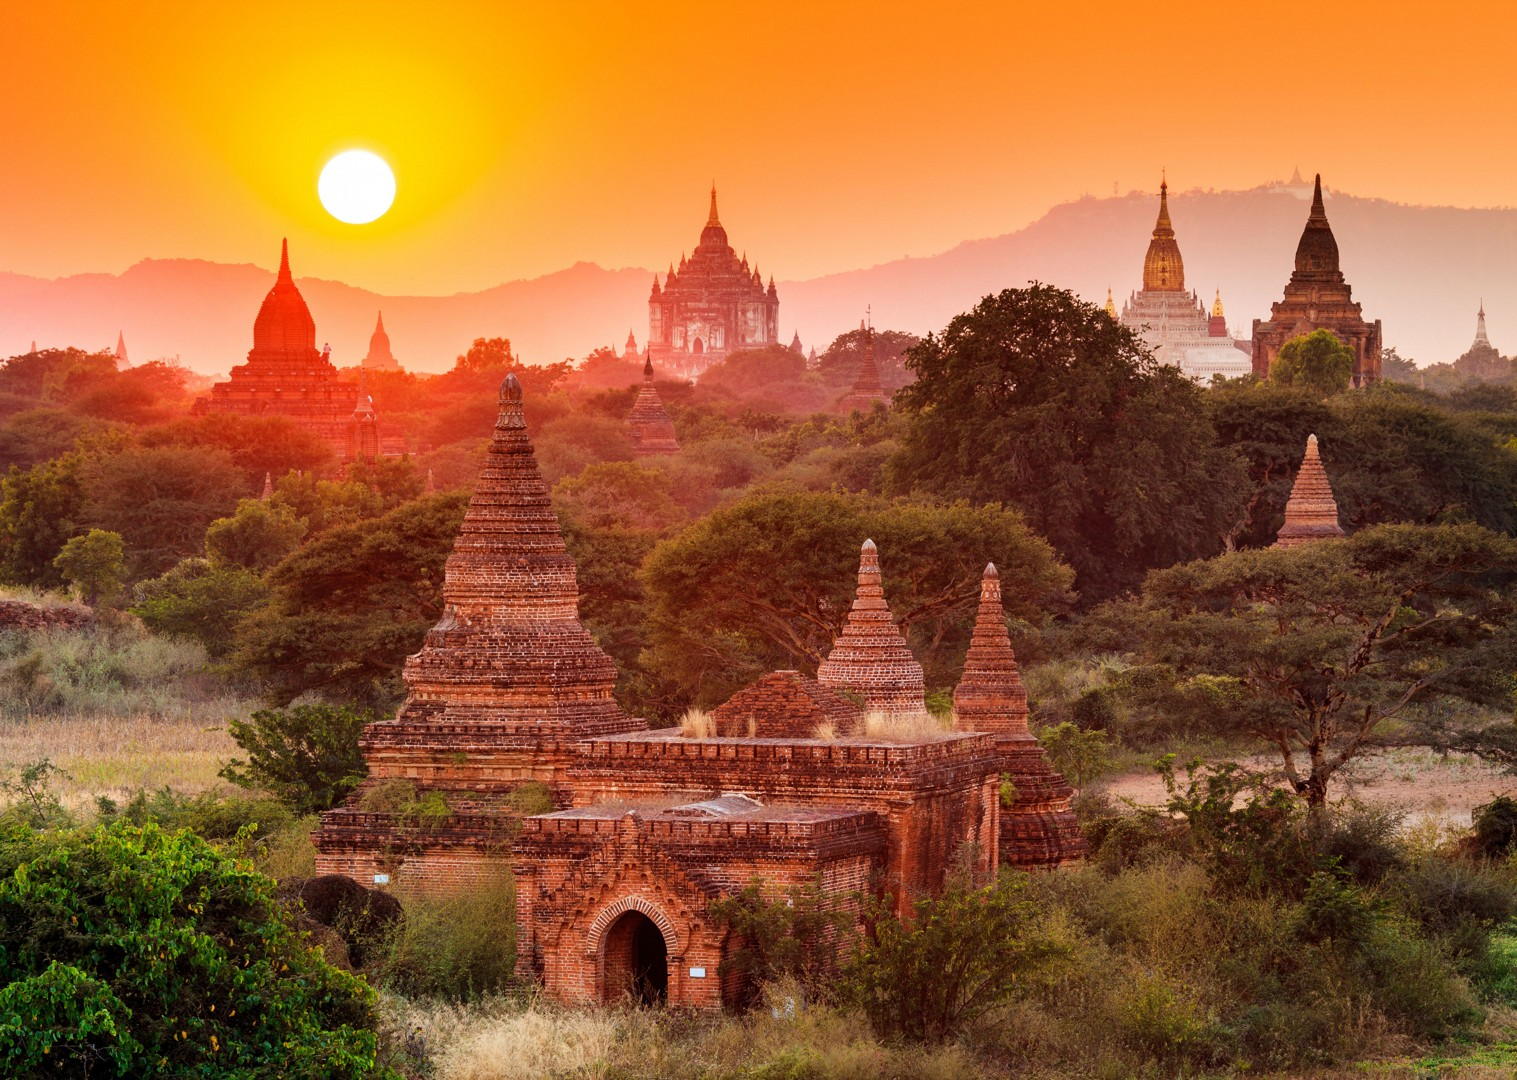 sunset-views-cycling-adventure-in-burma-bagan-myanmar.jpg - Burma - Bagan and Beyond - Cycling Adventures